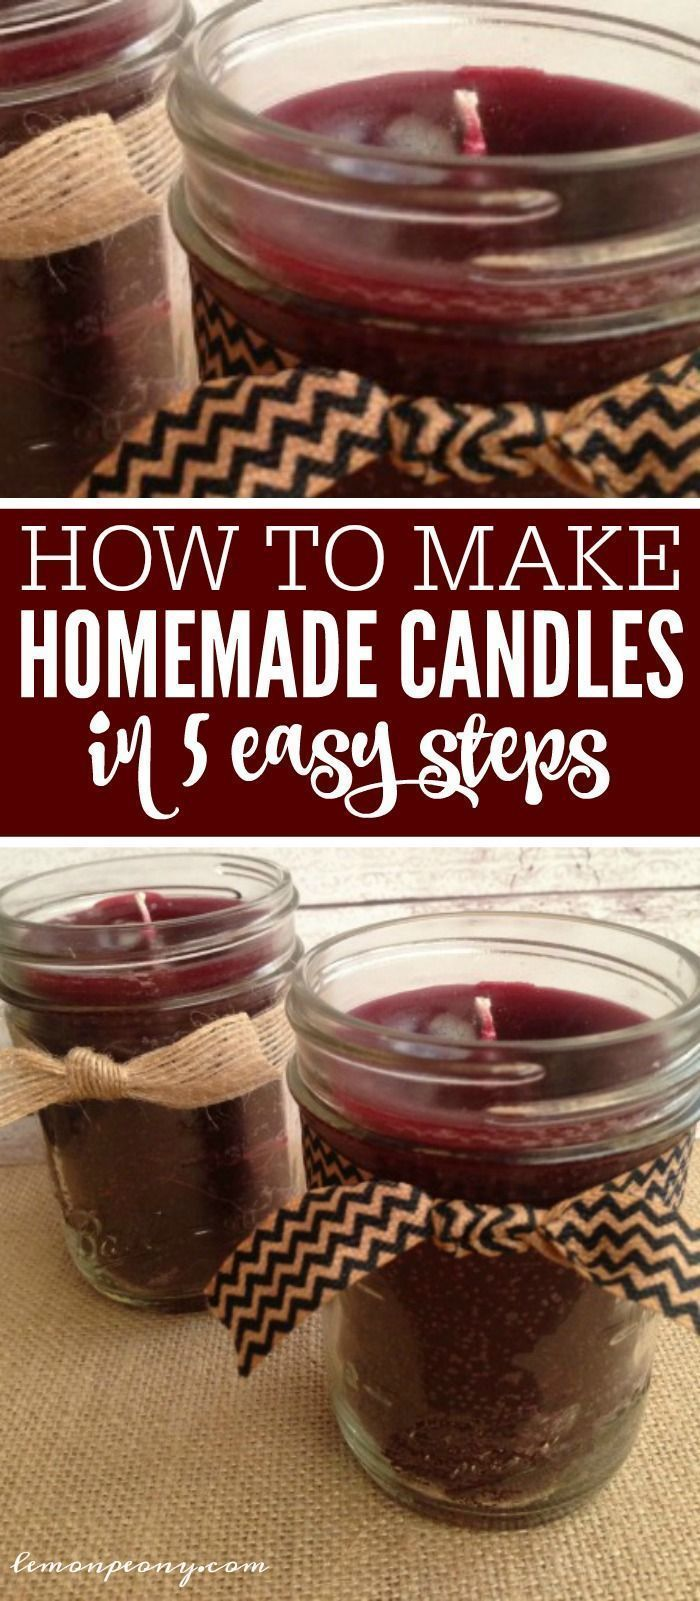 How To Make Homemade Candles In 5 Easy Steps Homemade Candles Food Candles Homemade Christmas